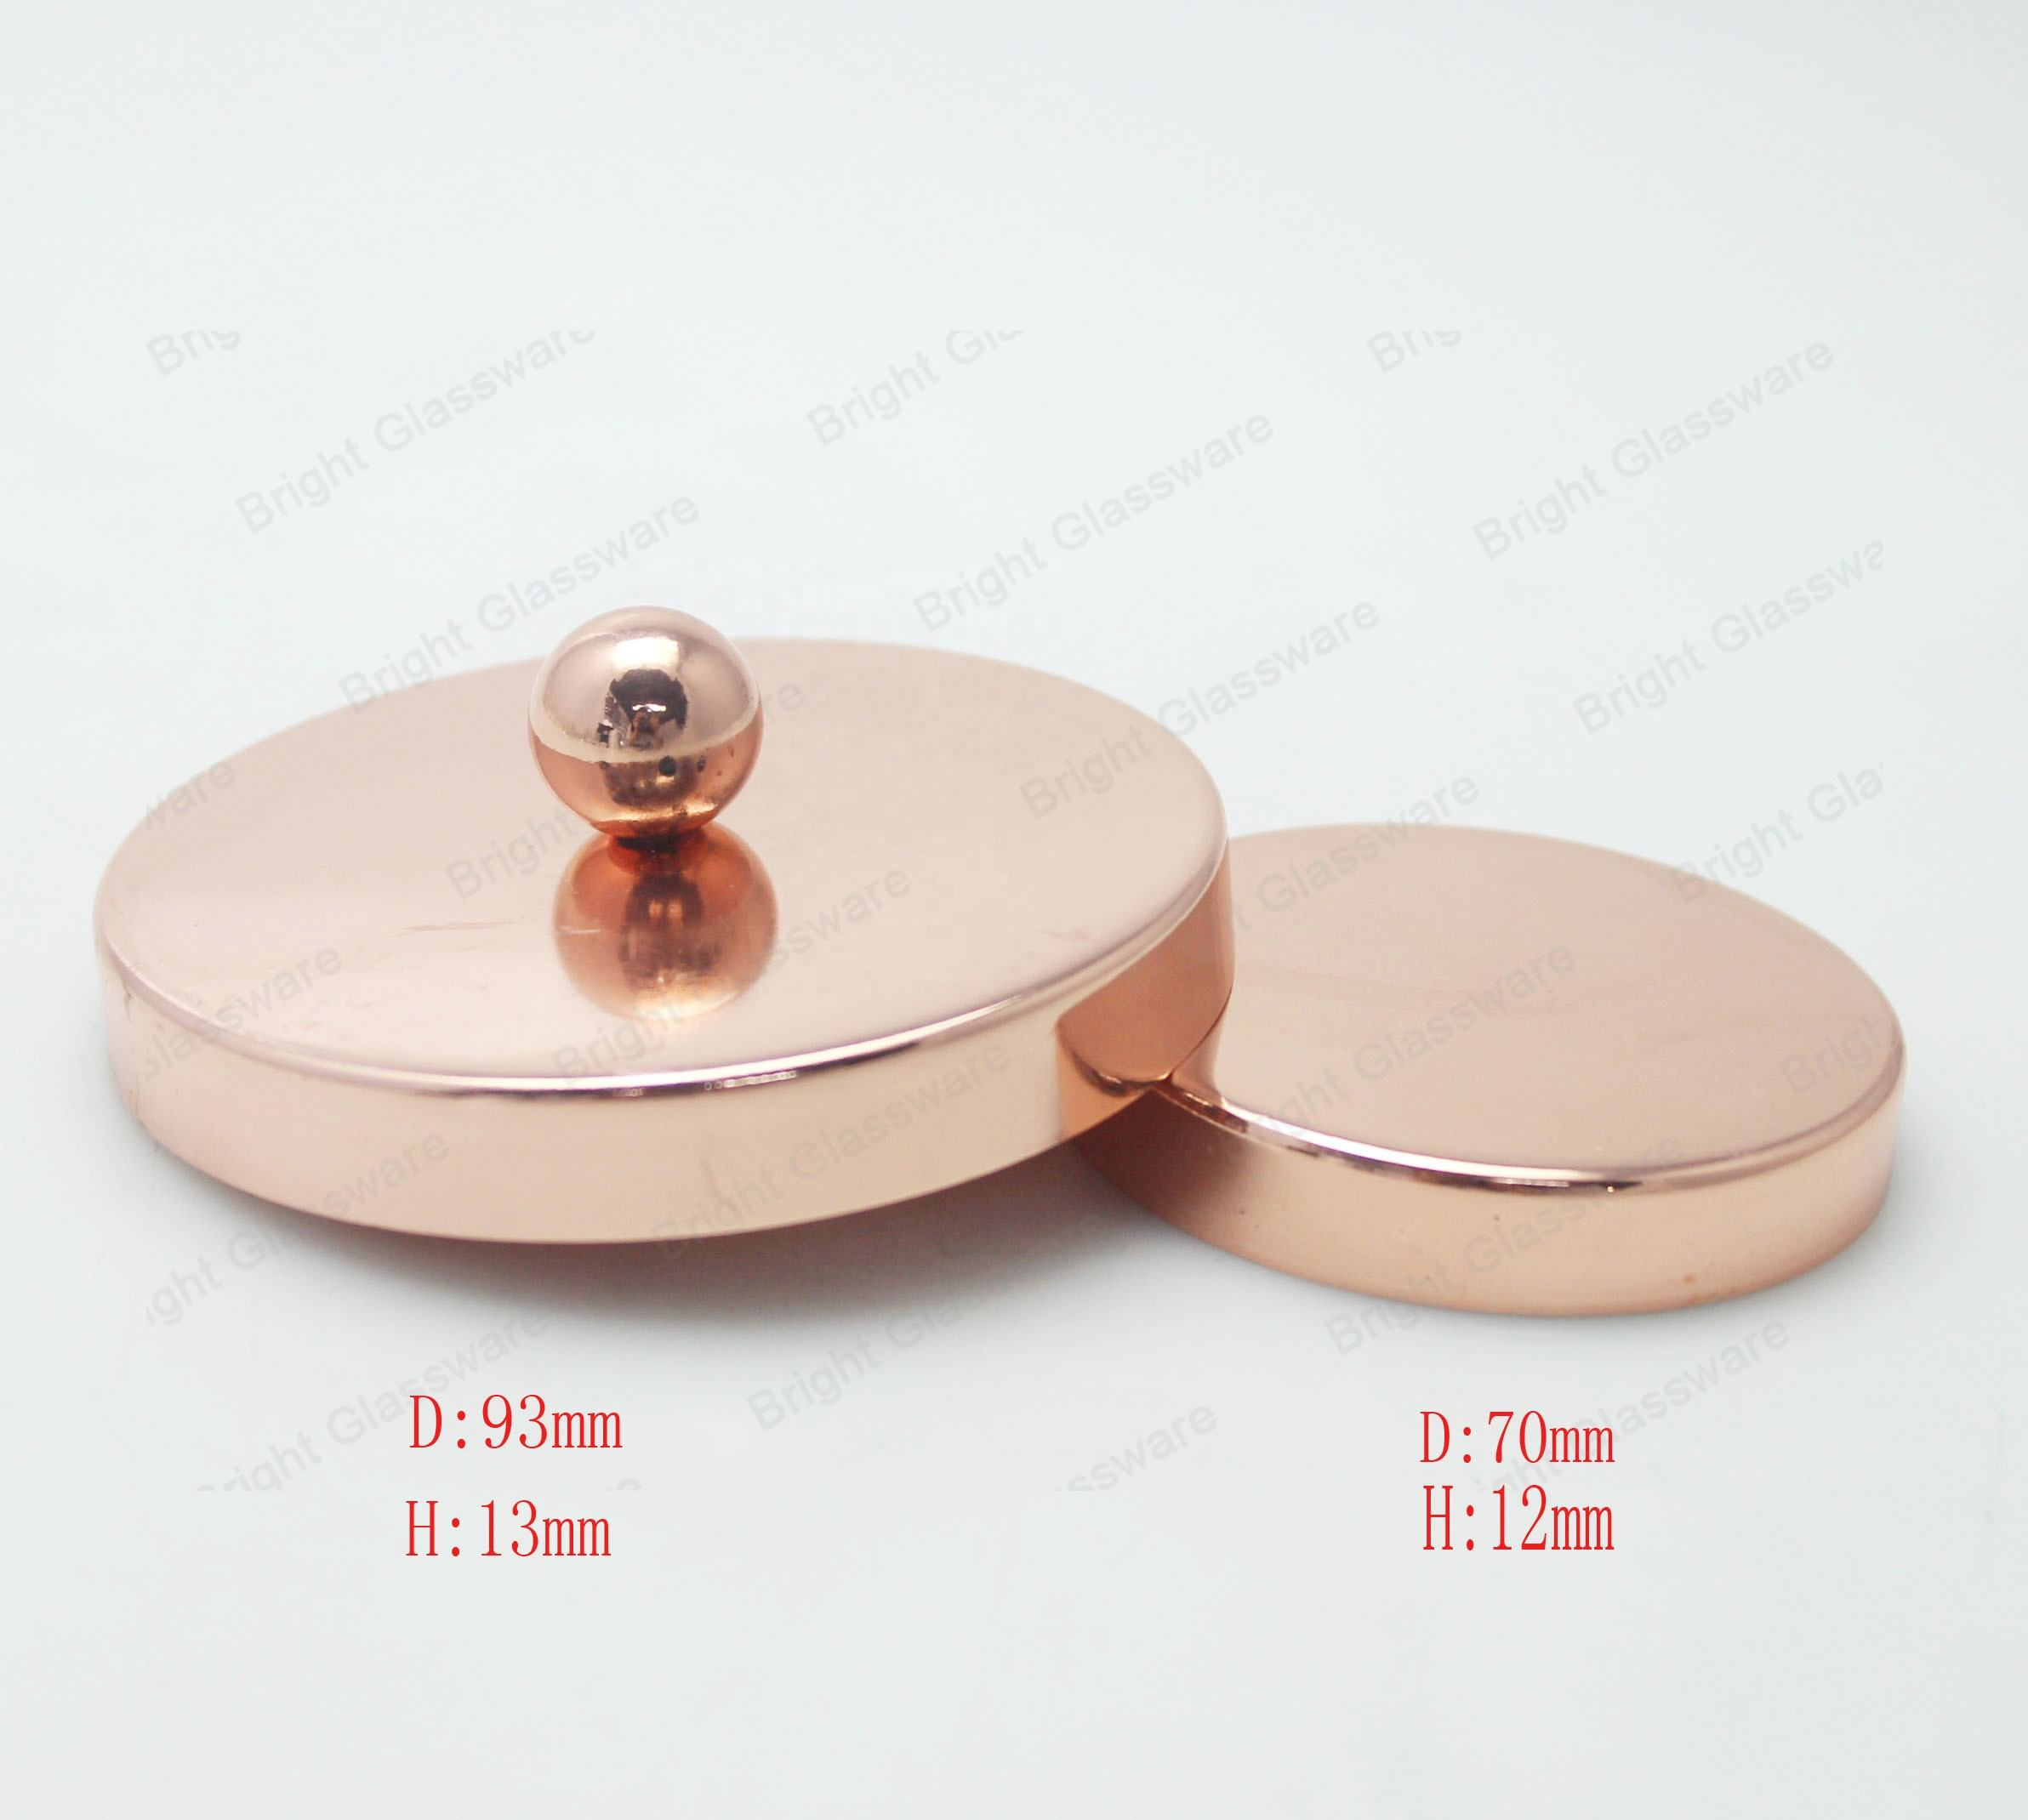 China Factory Rose gold plated metal lid for glass candle holder lid candle jar lid